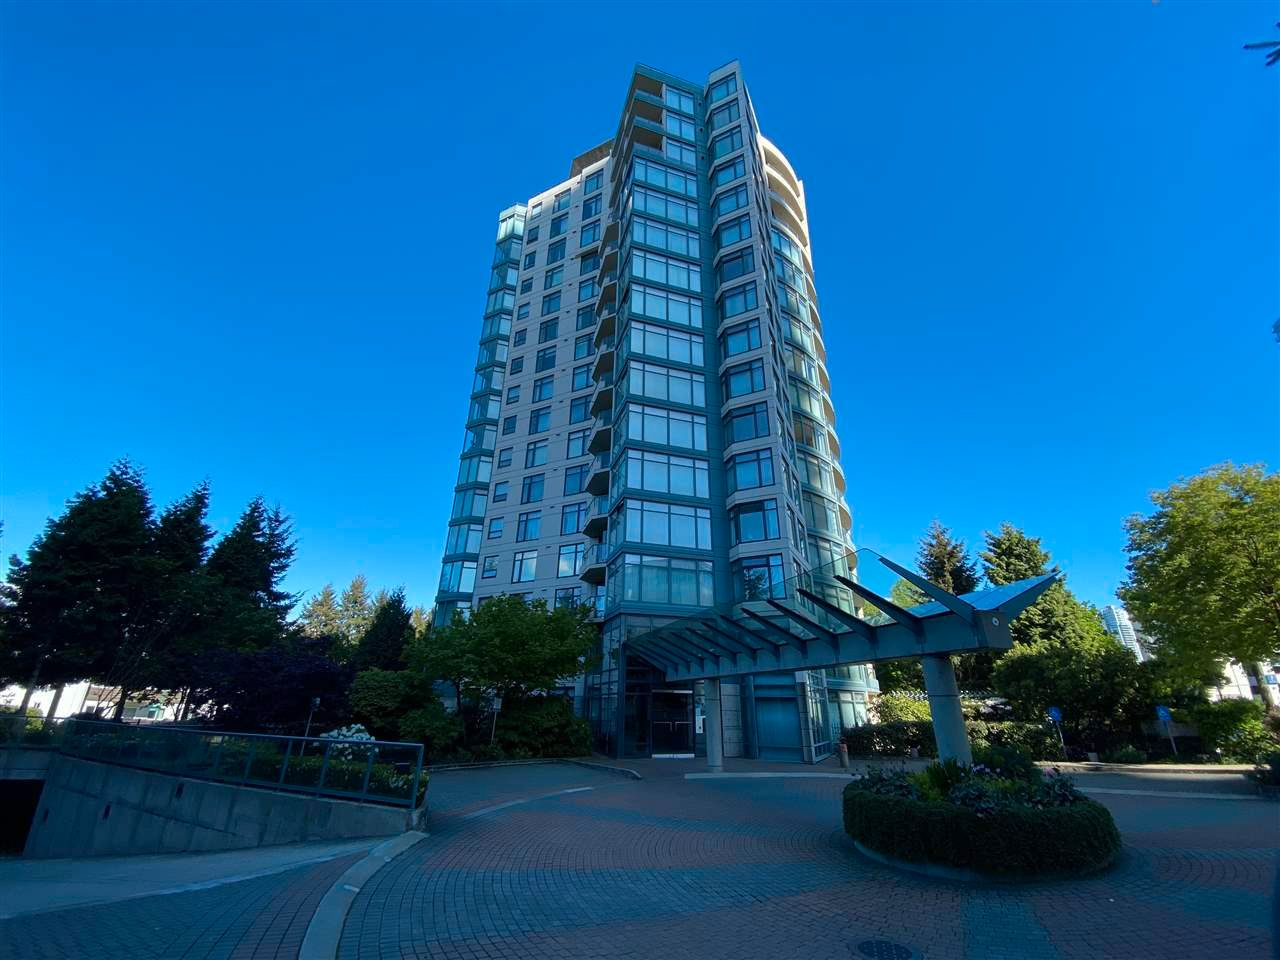 Main Photo: 1501 4567 HAZEL STREET in Burnaby: Forest Glen BS Condo for sale (Burnaby South)  : MLS®# R2578419